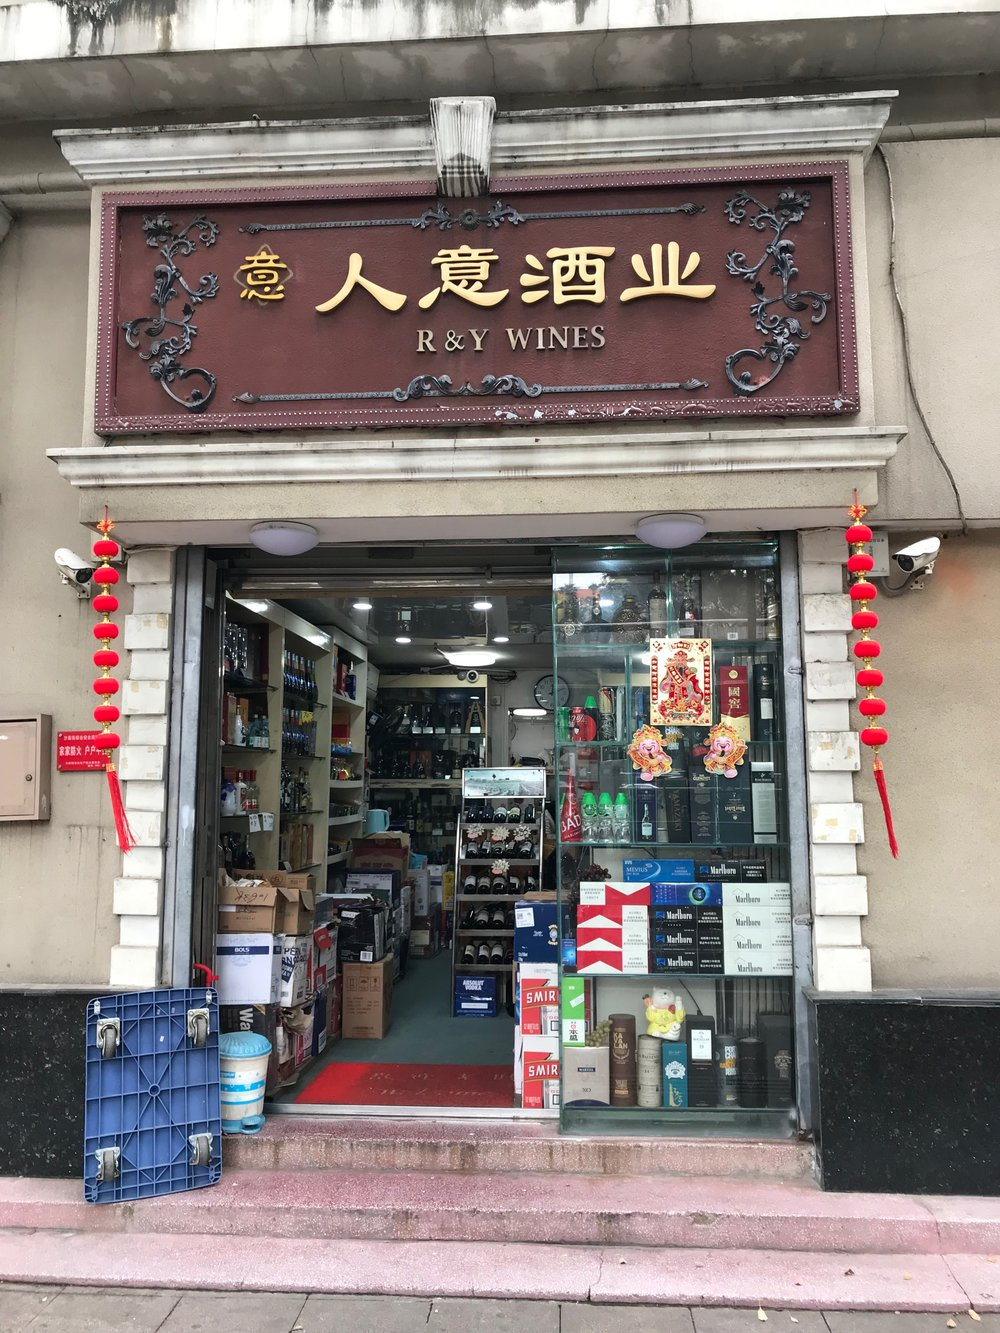 A typical neighborhood wine merchant in China doubles as cigarette shop as well as liqour store. French wines are most prominent followed by Australian and Chilean.